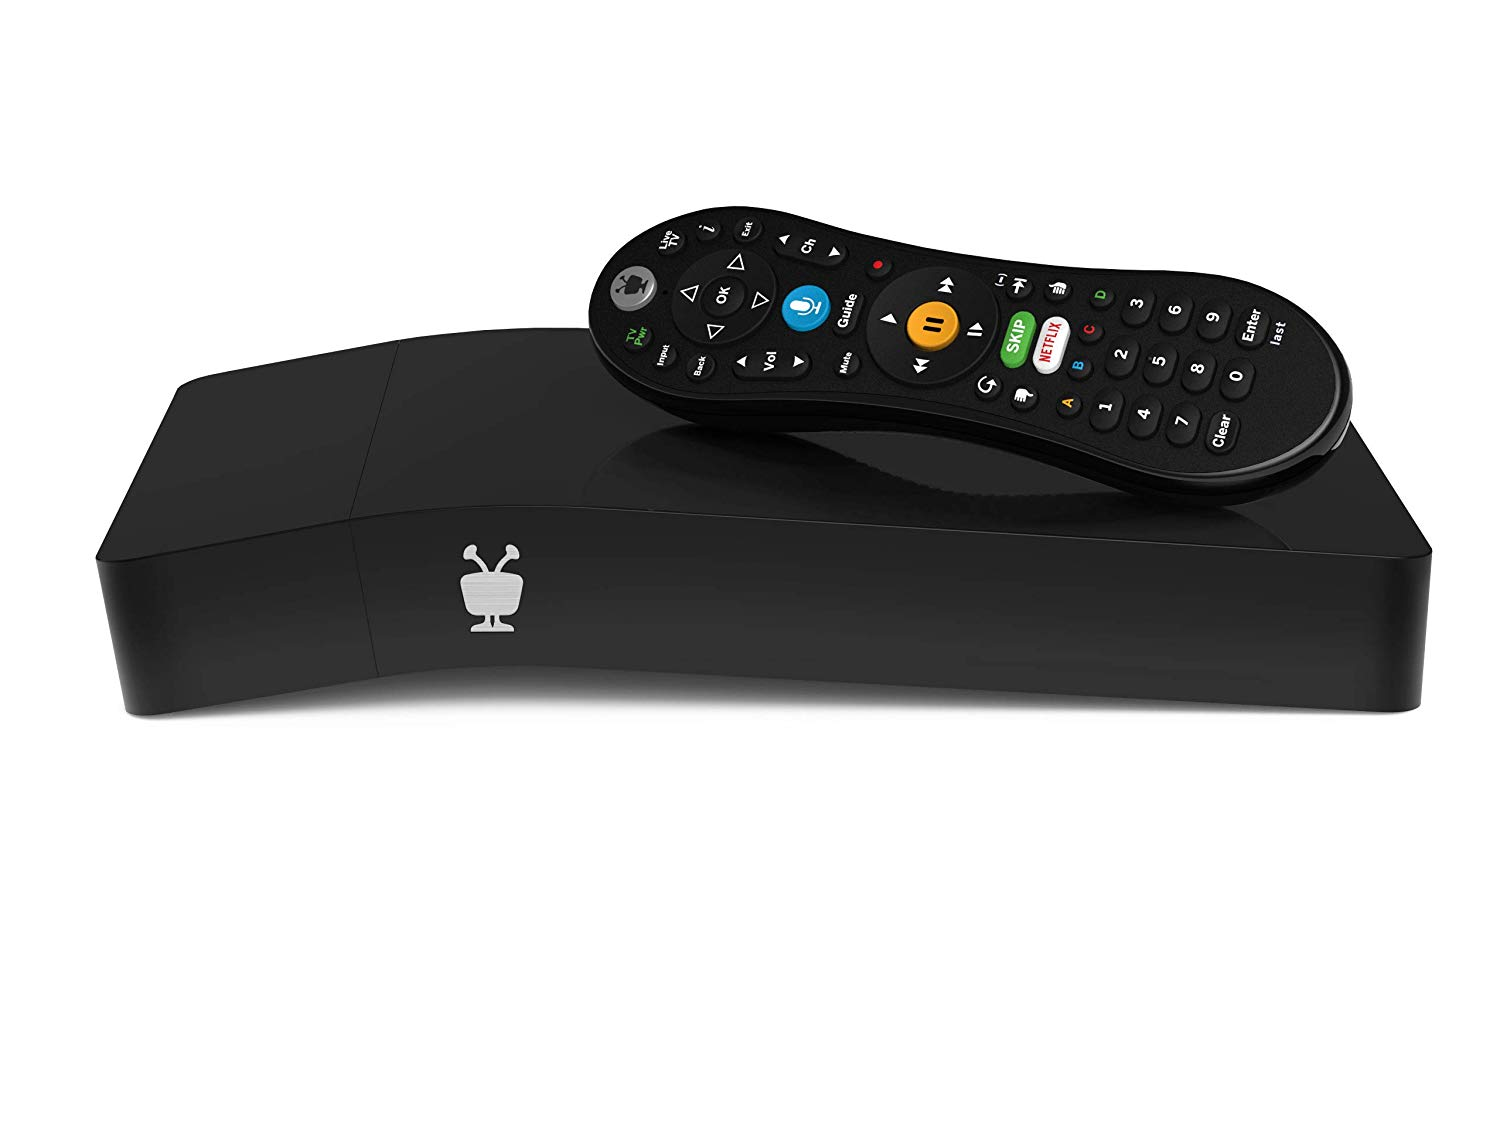 Cheap Tv Tivo, find Tv Tivo deals on line at Alibaba com